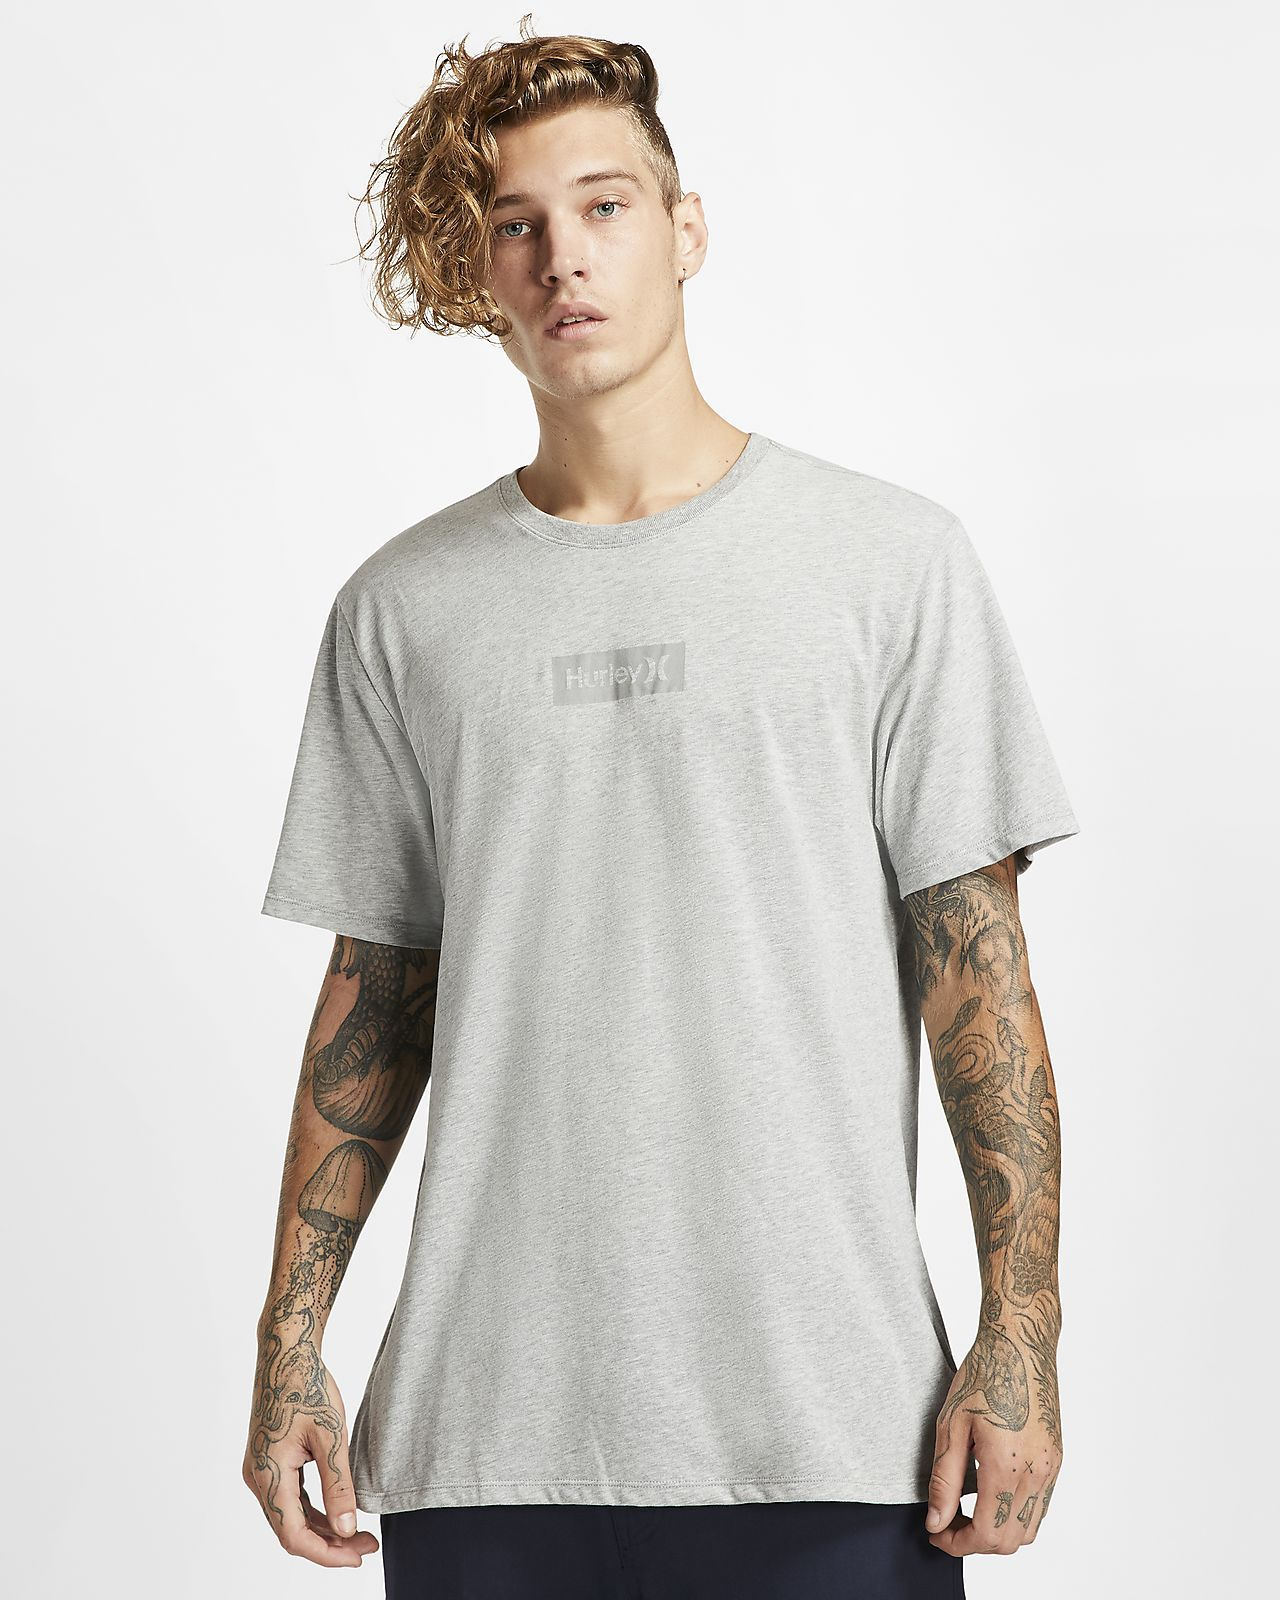 Playera para hombre Hurley Dri-FIT One And Only Small Box Reflective